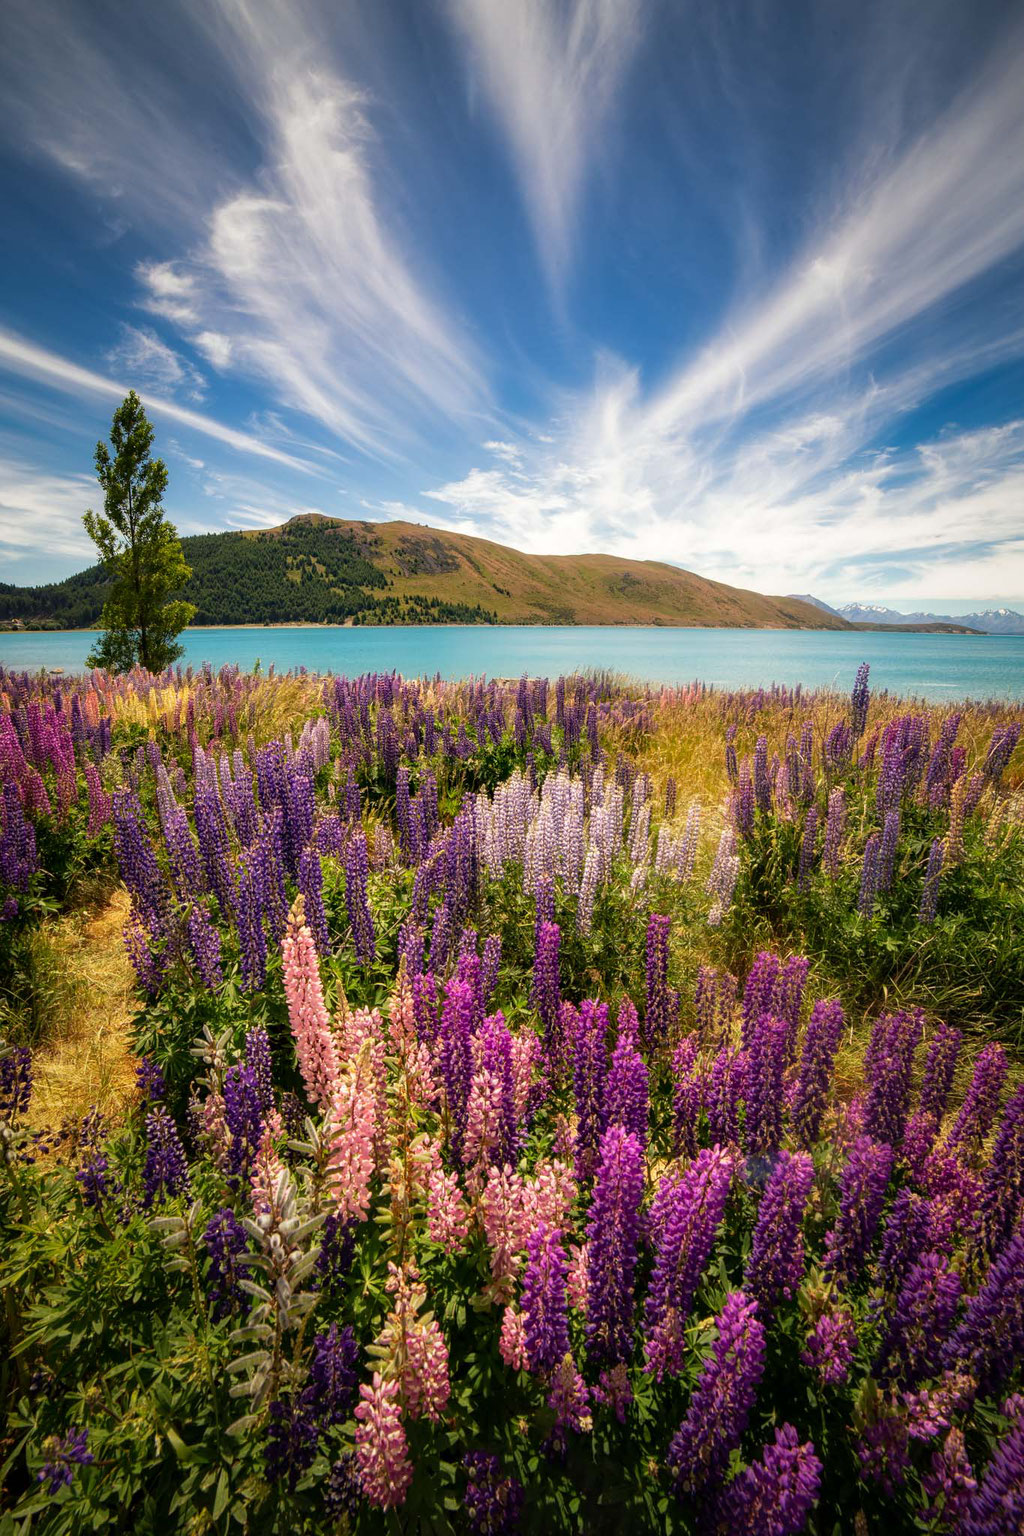 Lupin flowers in bloom. Lake Tekapo